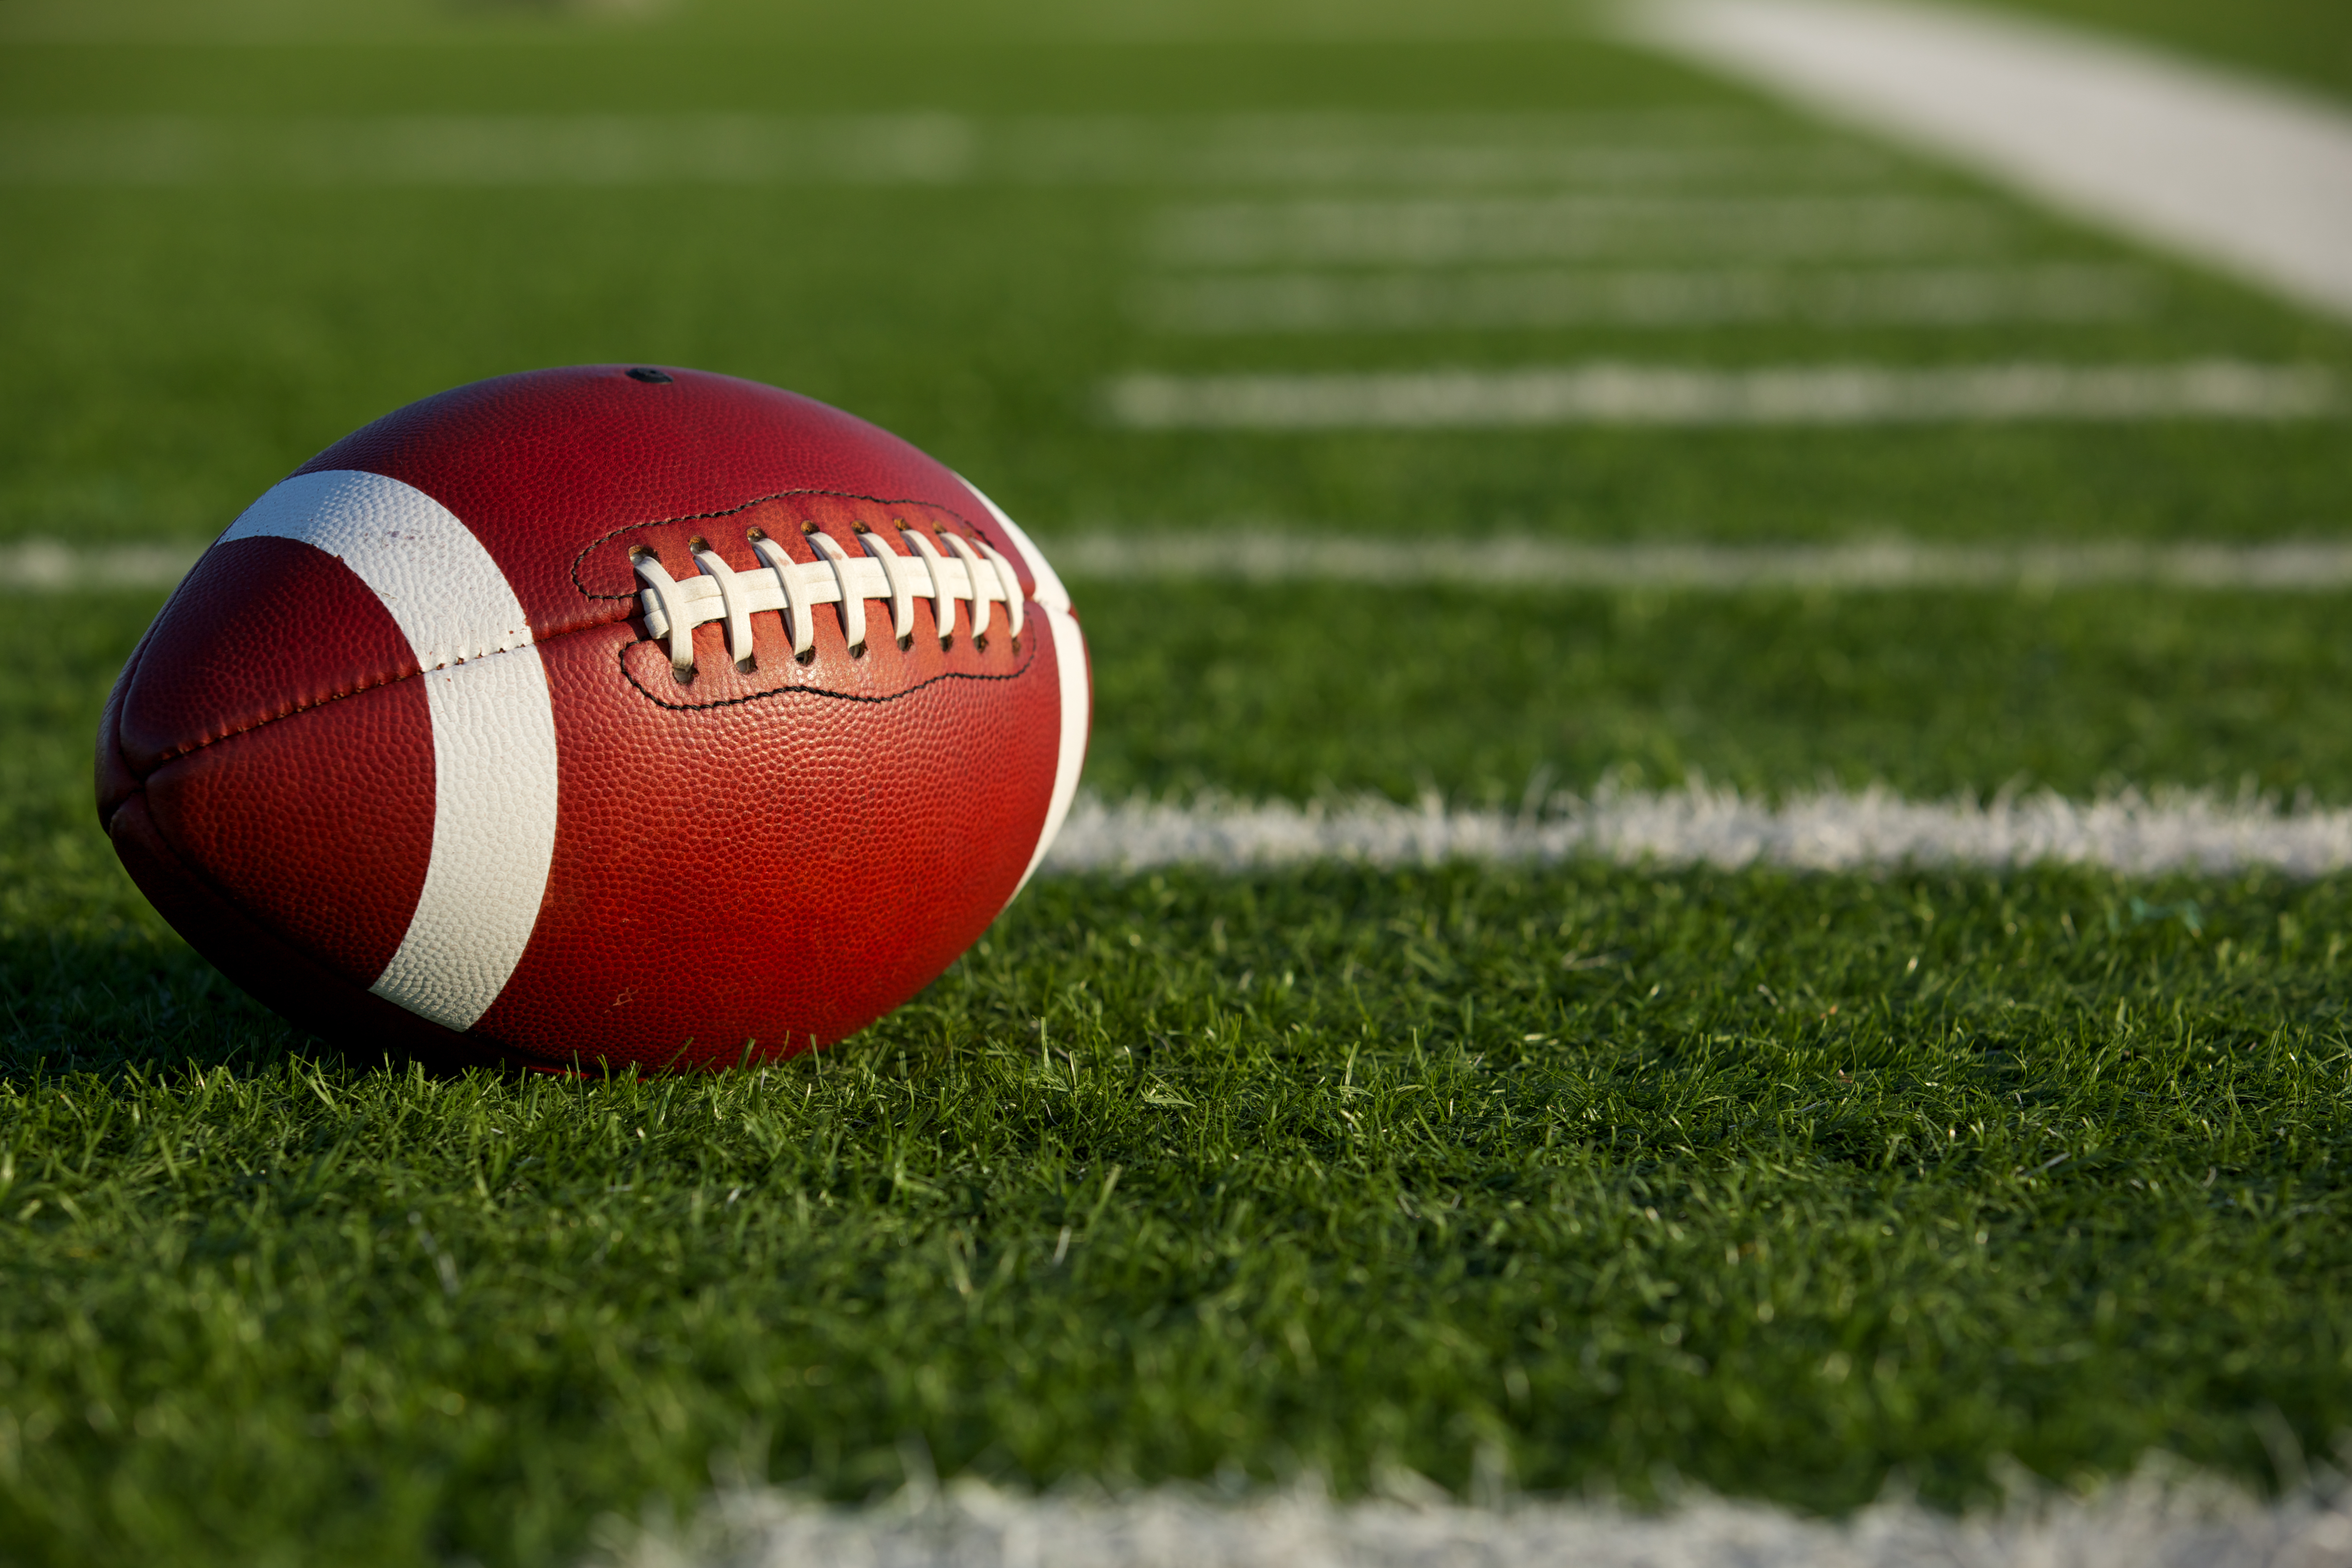 A football on the field